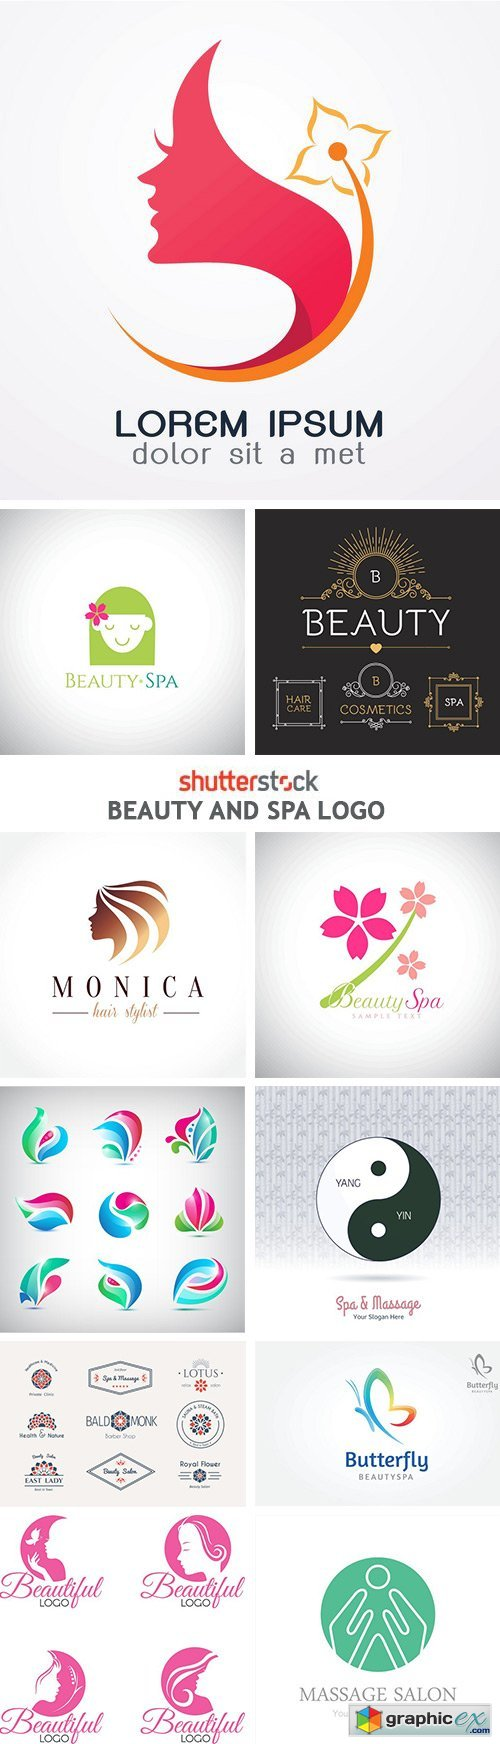 Beauty And Spa Logo - 25xEPS